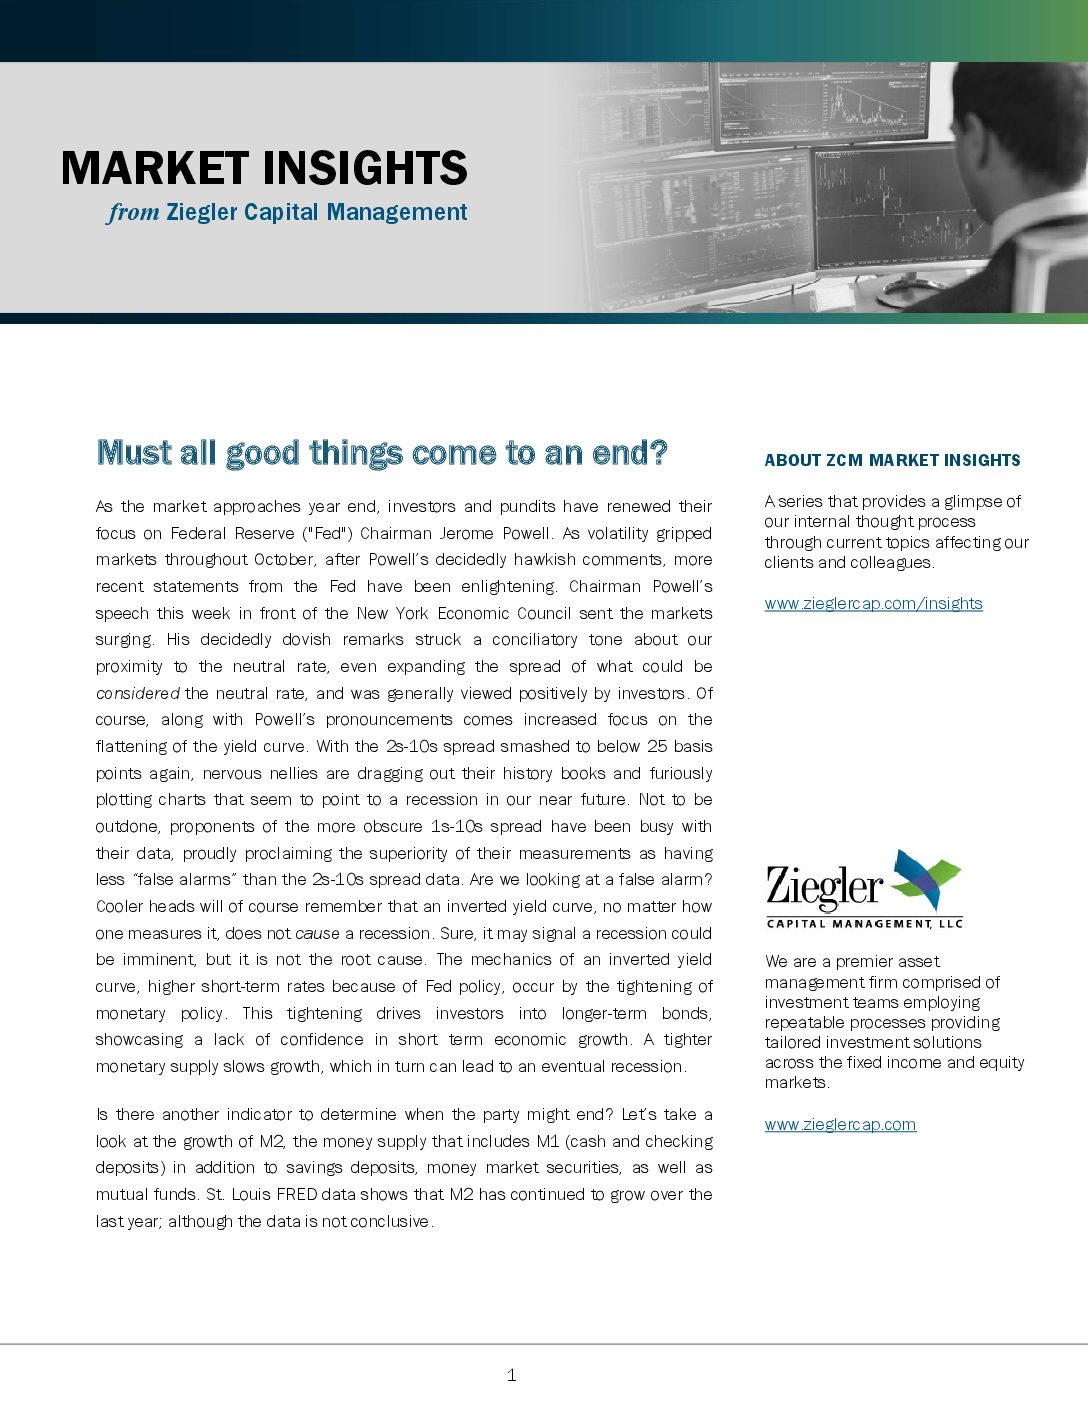 Must all good things come to an end? – Ziegler Capital